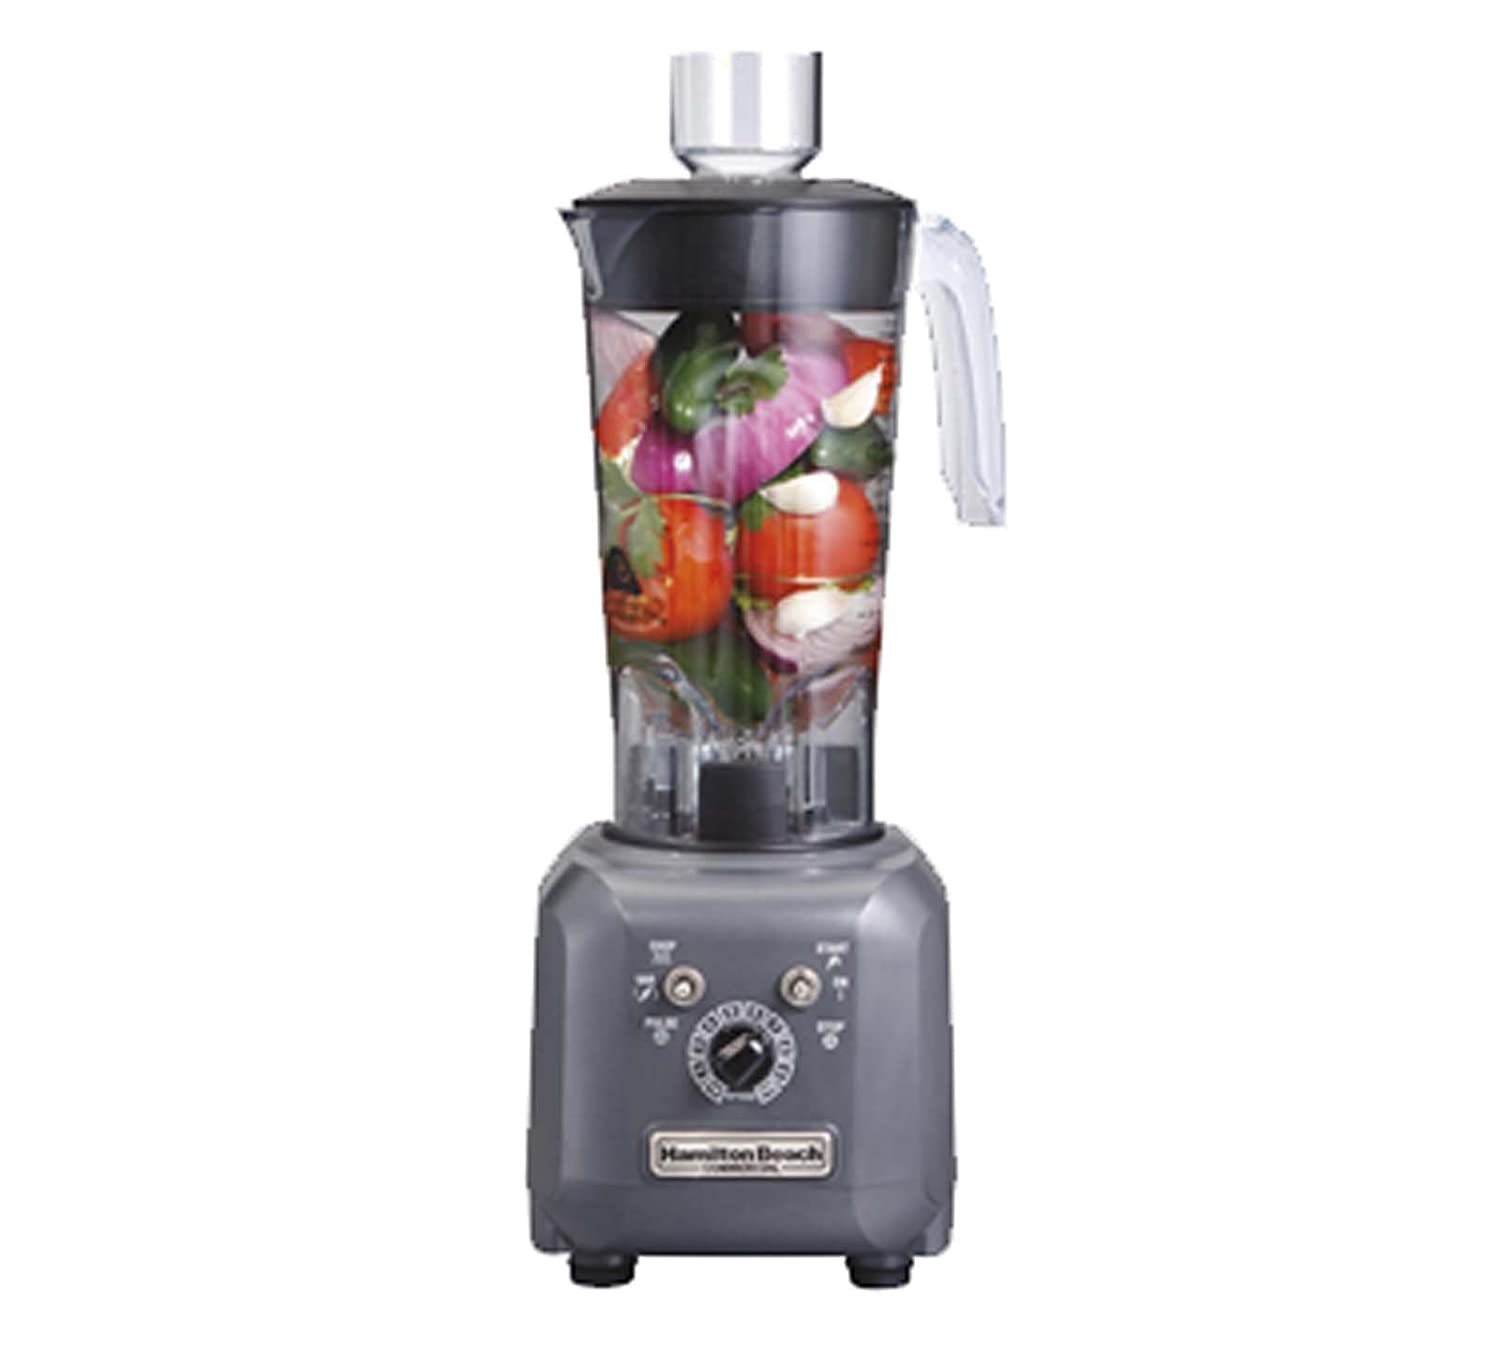 Hamilton Beach(HBF500) 48 oz Commercial Food Blender